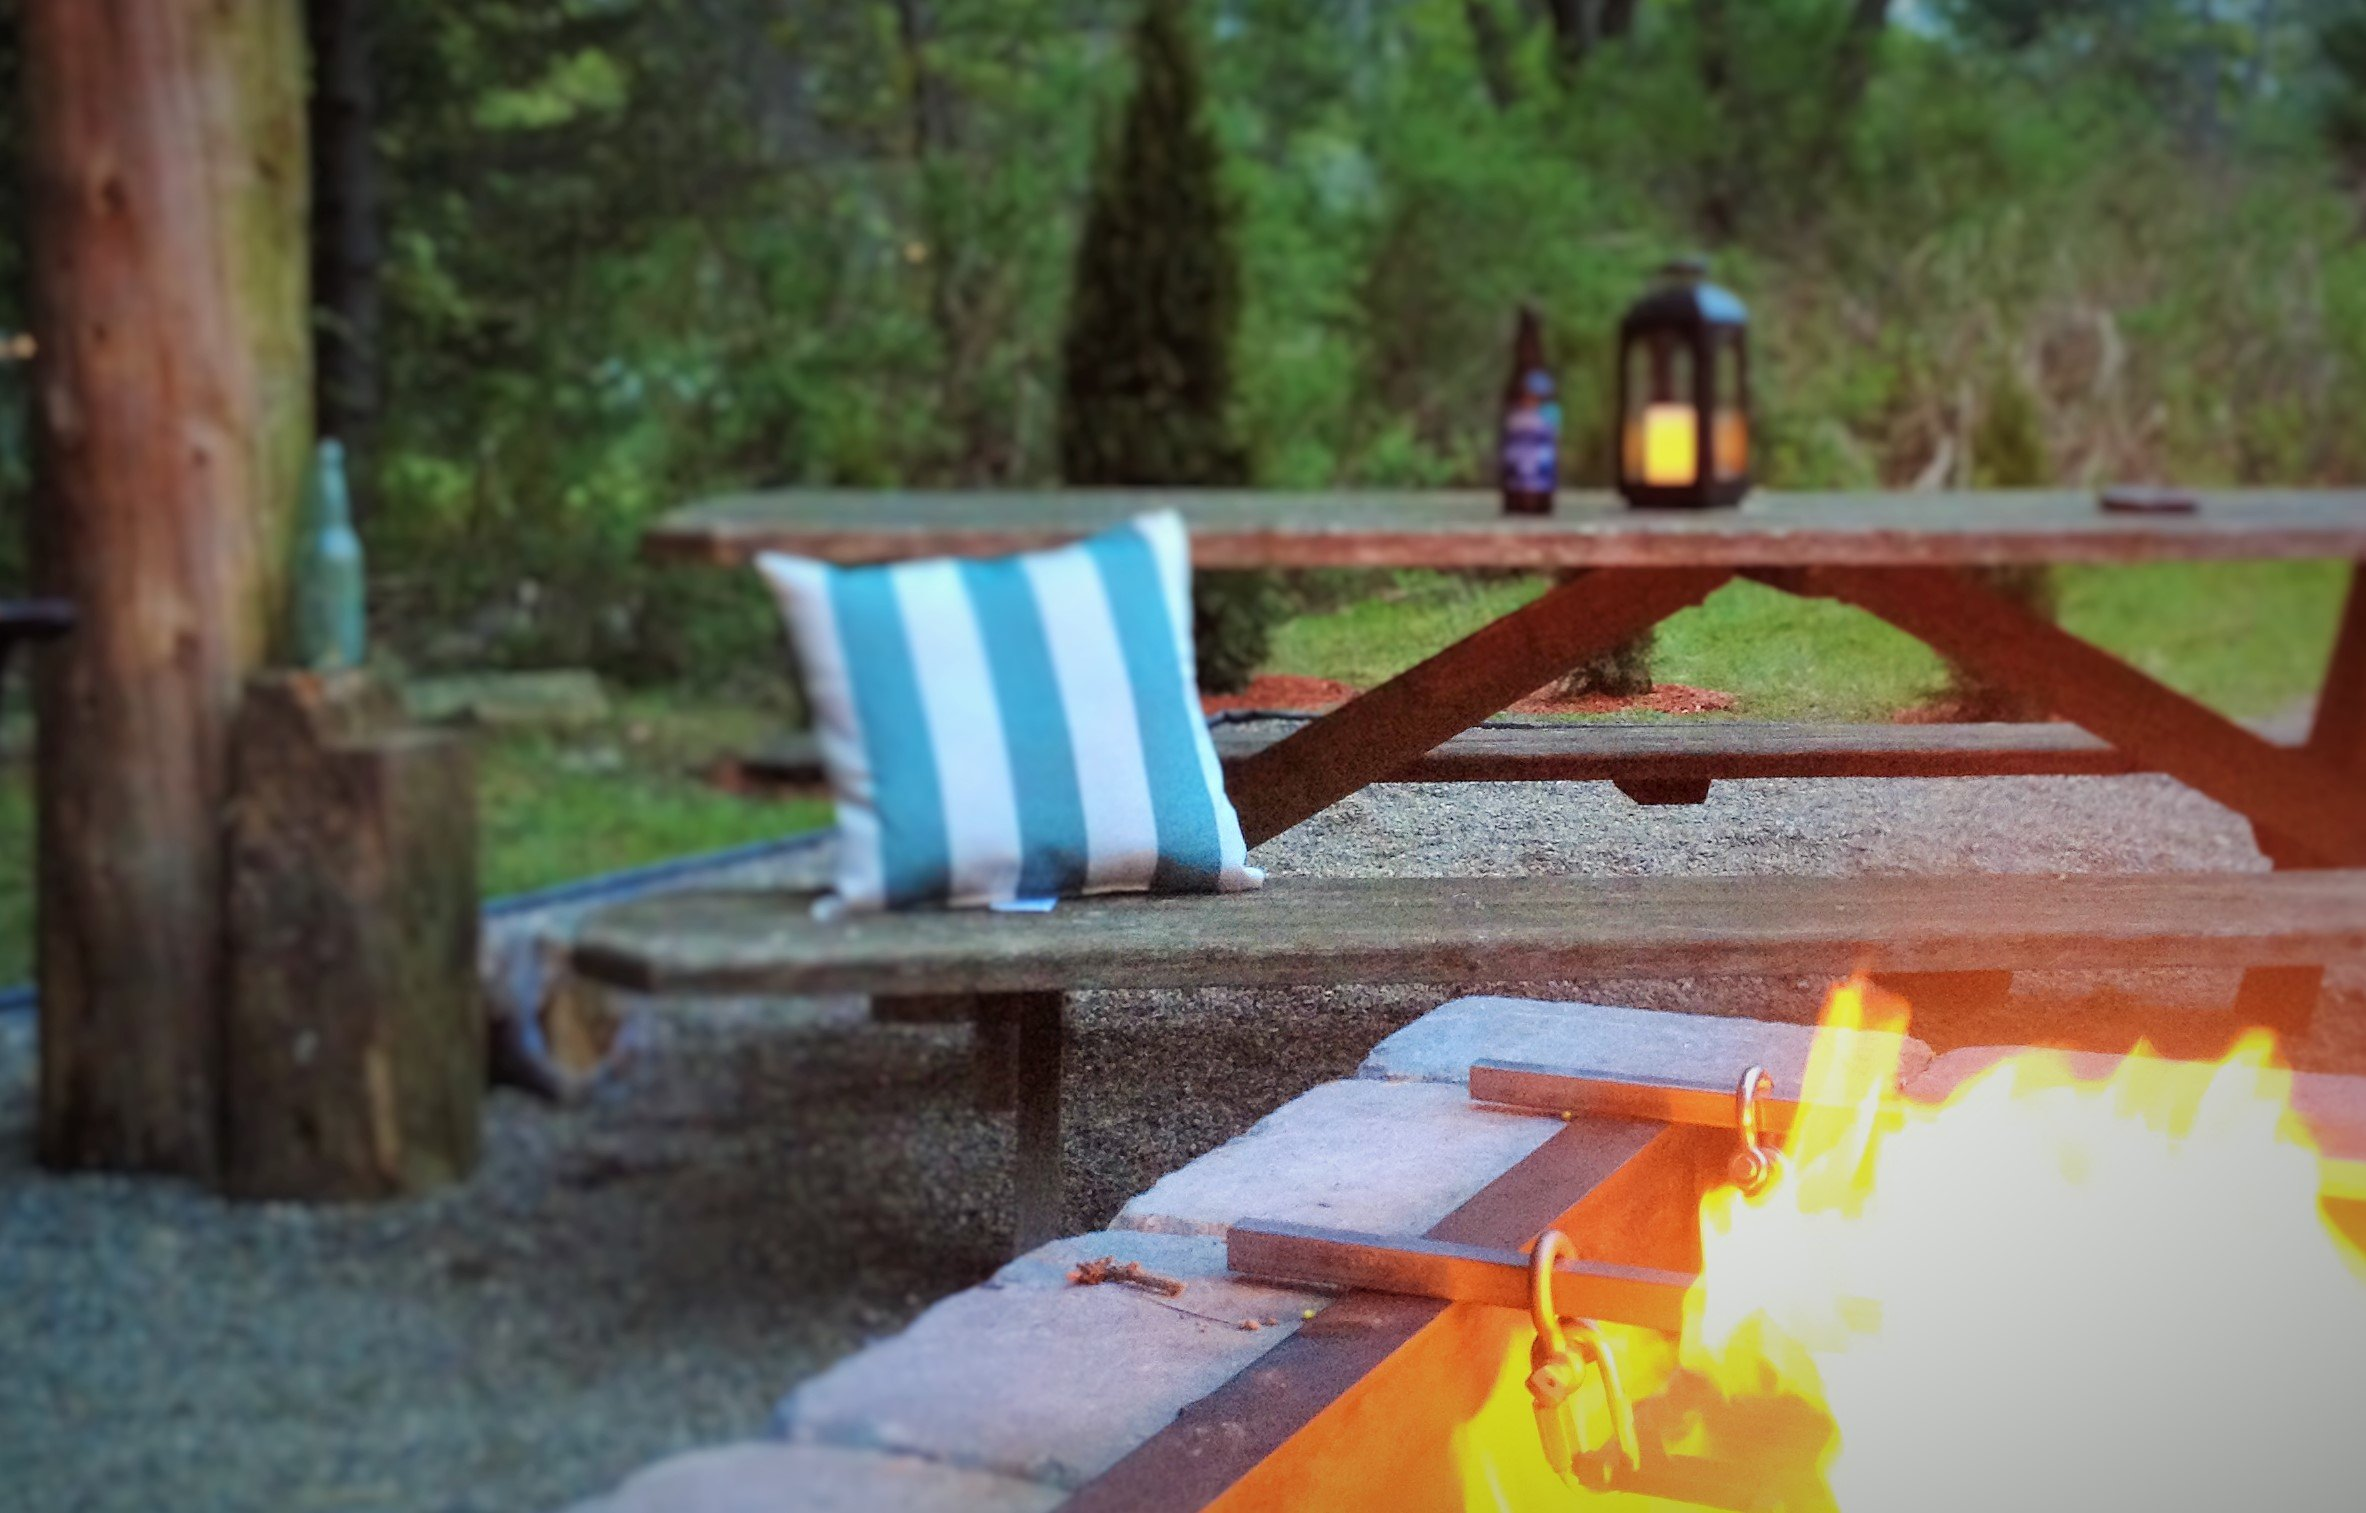 Come relax on the fire pit patio